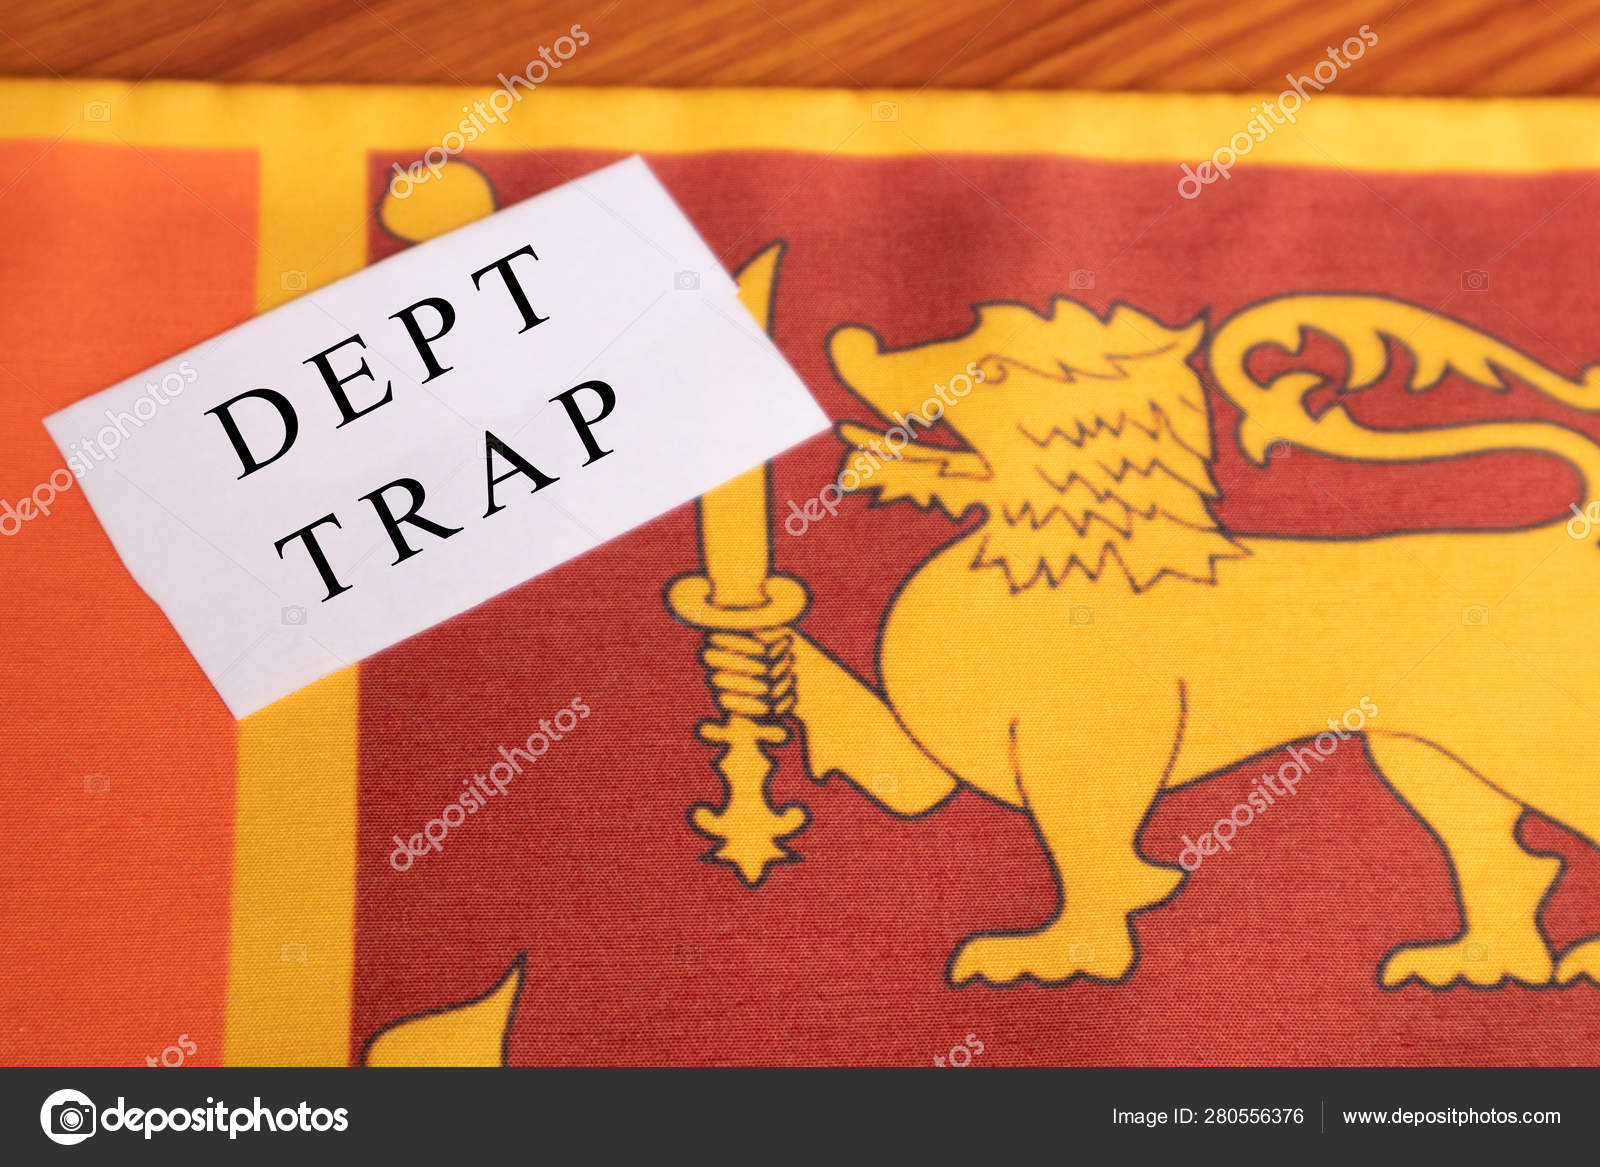 Concept of Dept trap printed on paper, Sri lankan flag as a